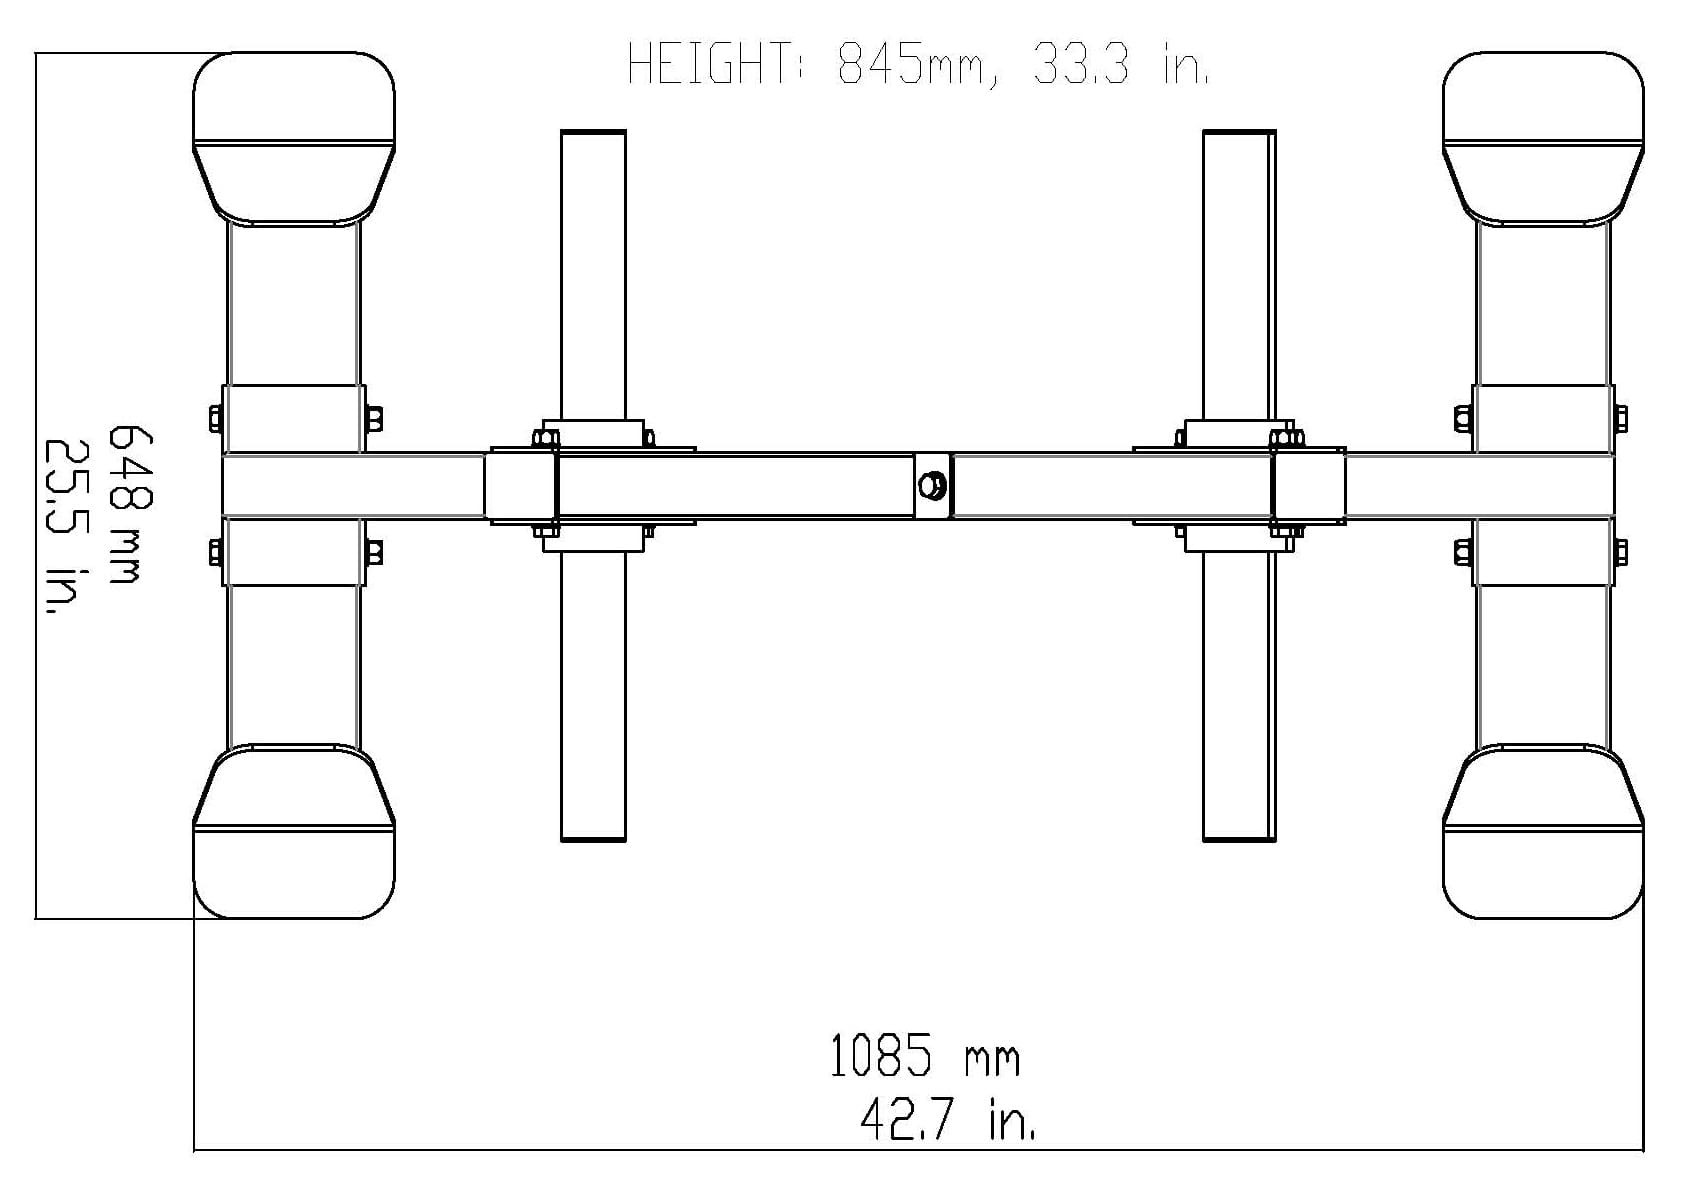 Body-Solid GWT66 Weight Tree Dimensions